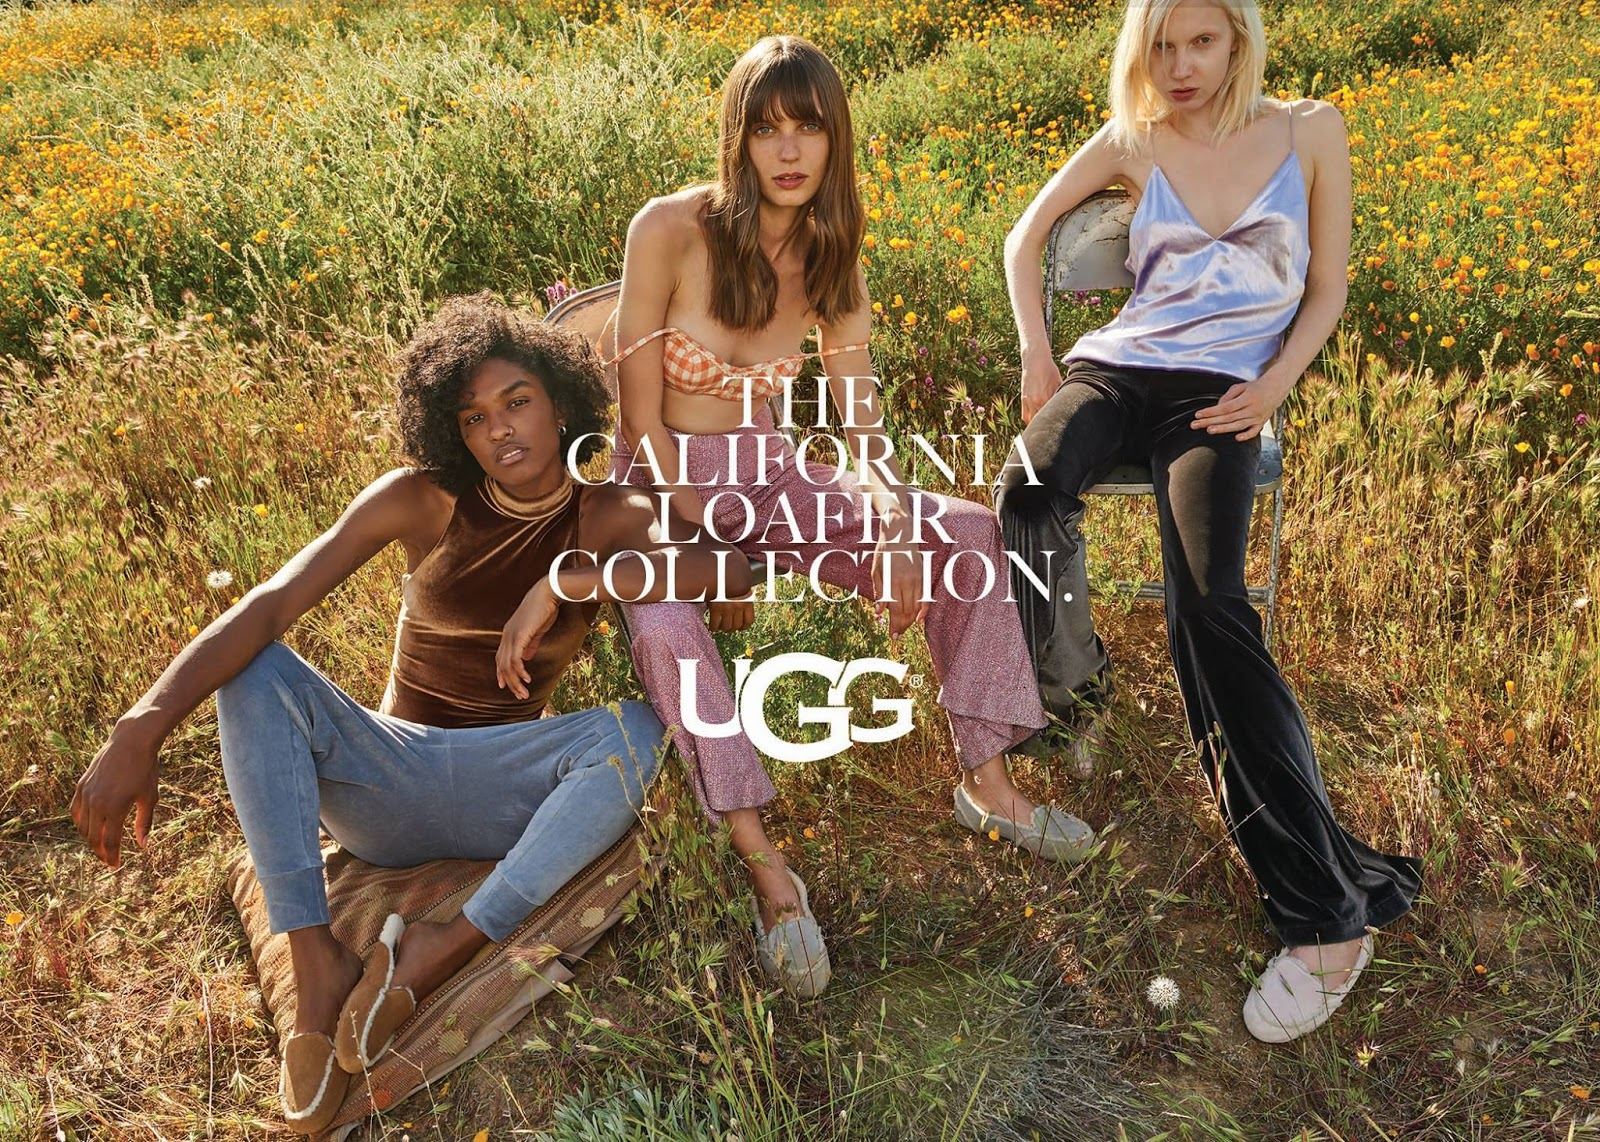 UGG Collective Spring/Summer 2018 Campaign